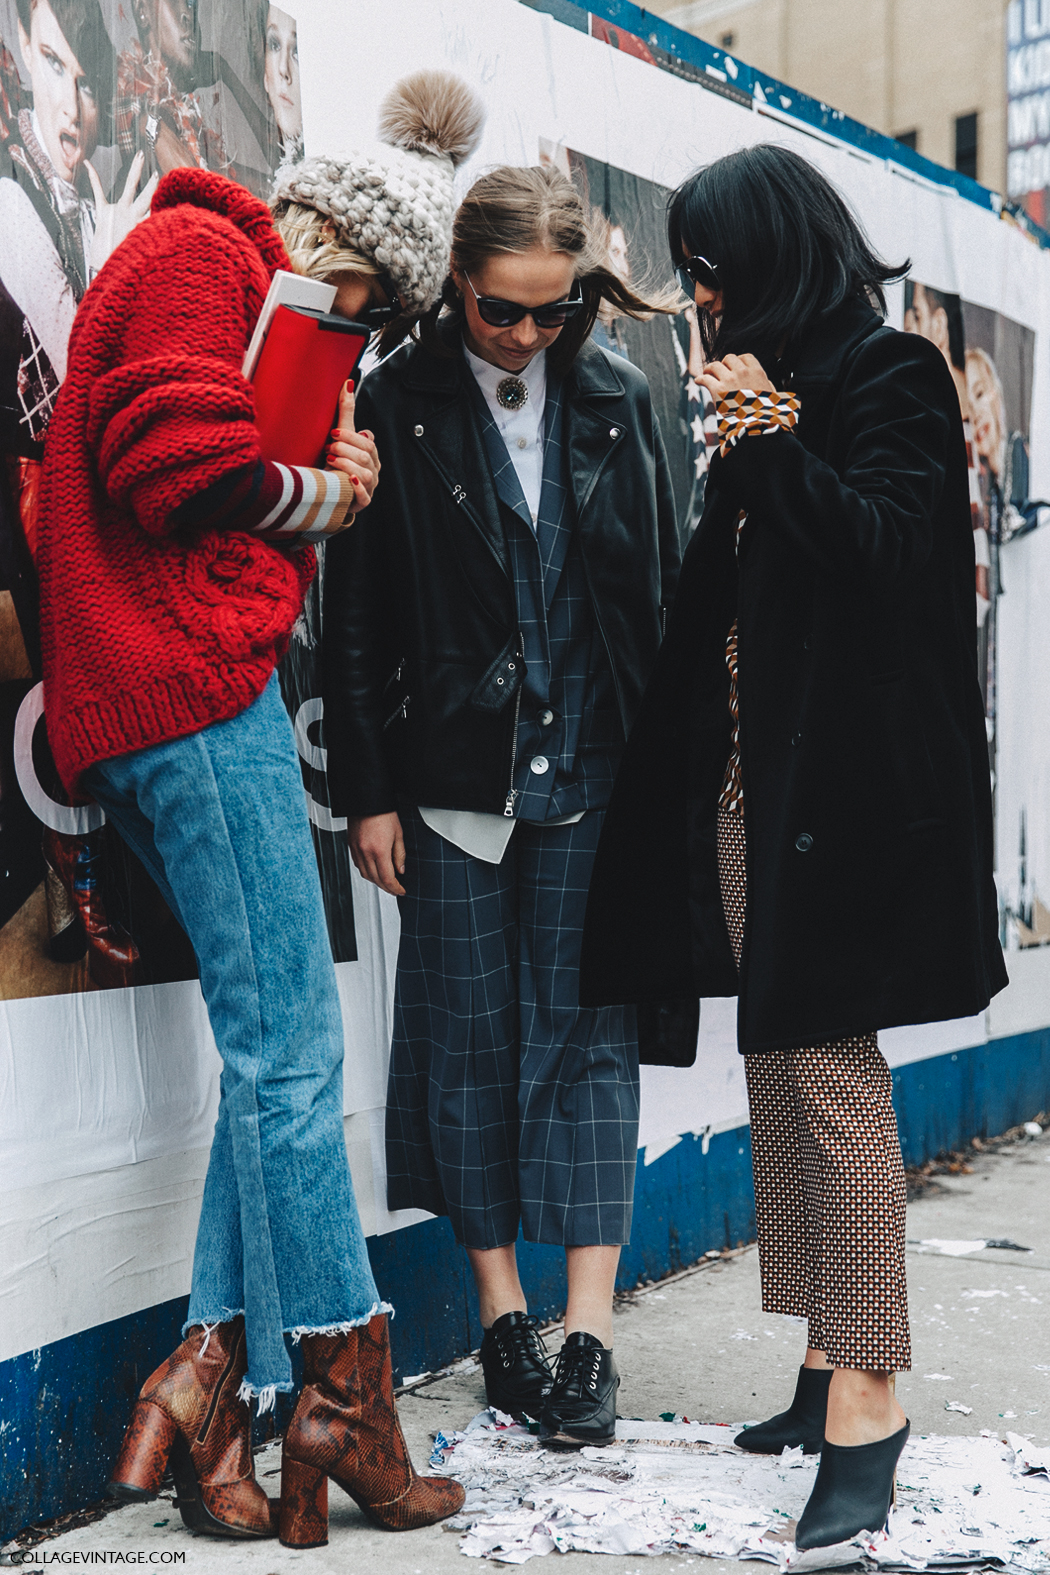 NYFW-New_York_Fashion_Week-Fall_Winter-17-Street_Style-Camille_Charriere-Vetements_Jeans-Red_Sweater-Beanie-Snake_Boots-Margaret_Zhang-1